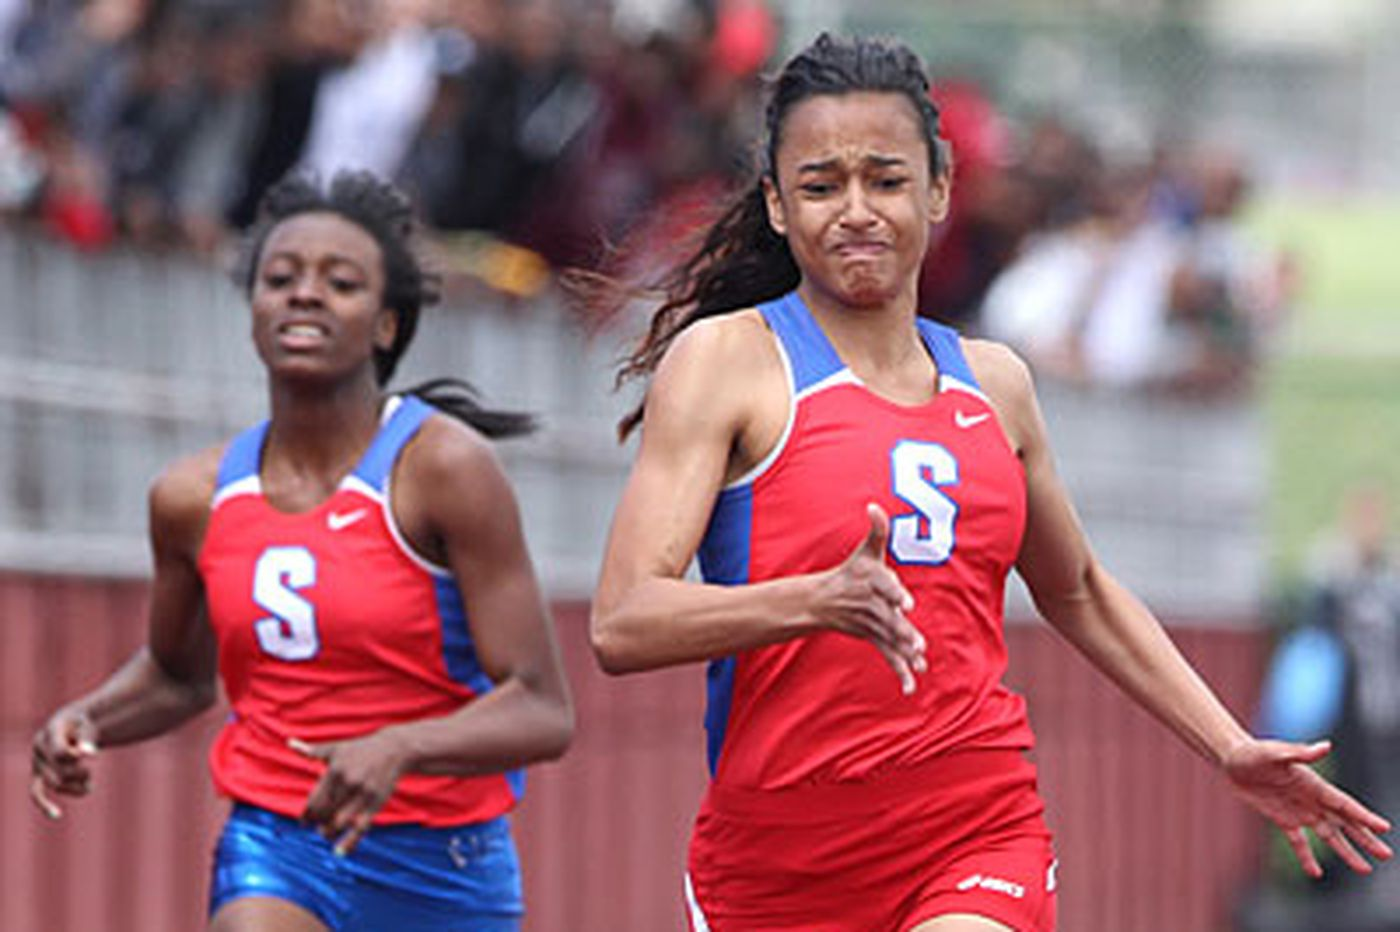 Swenson sweeps titles in Public League track